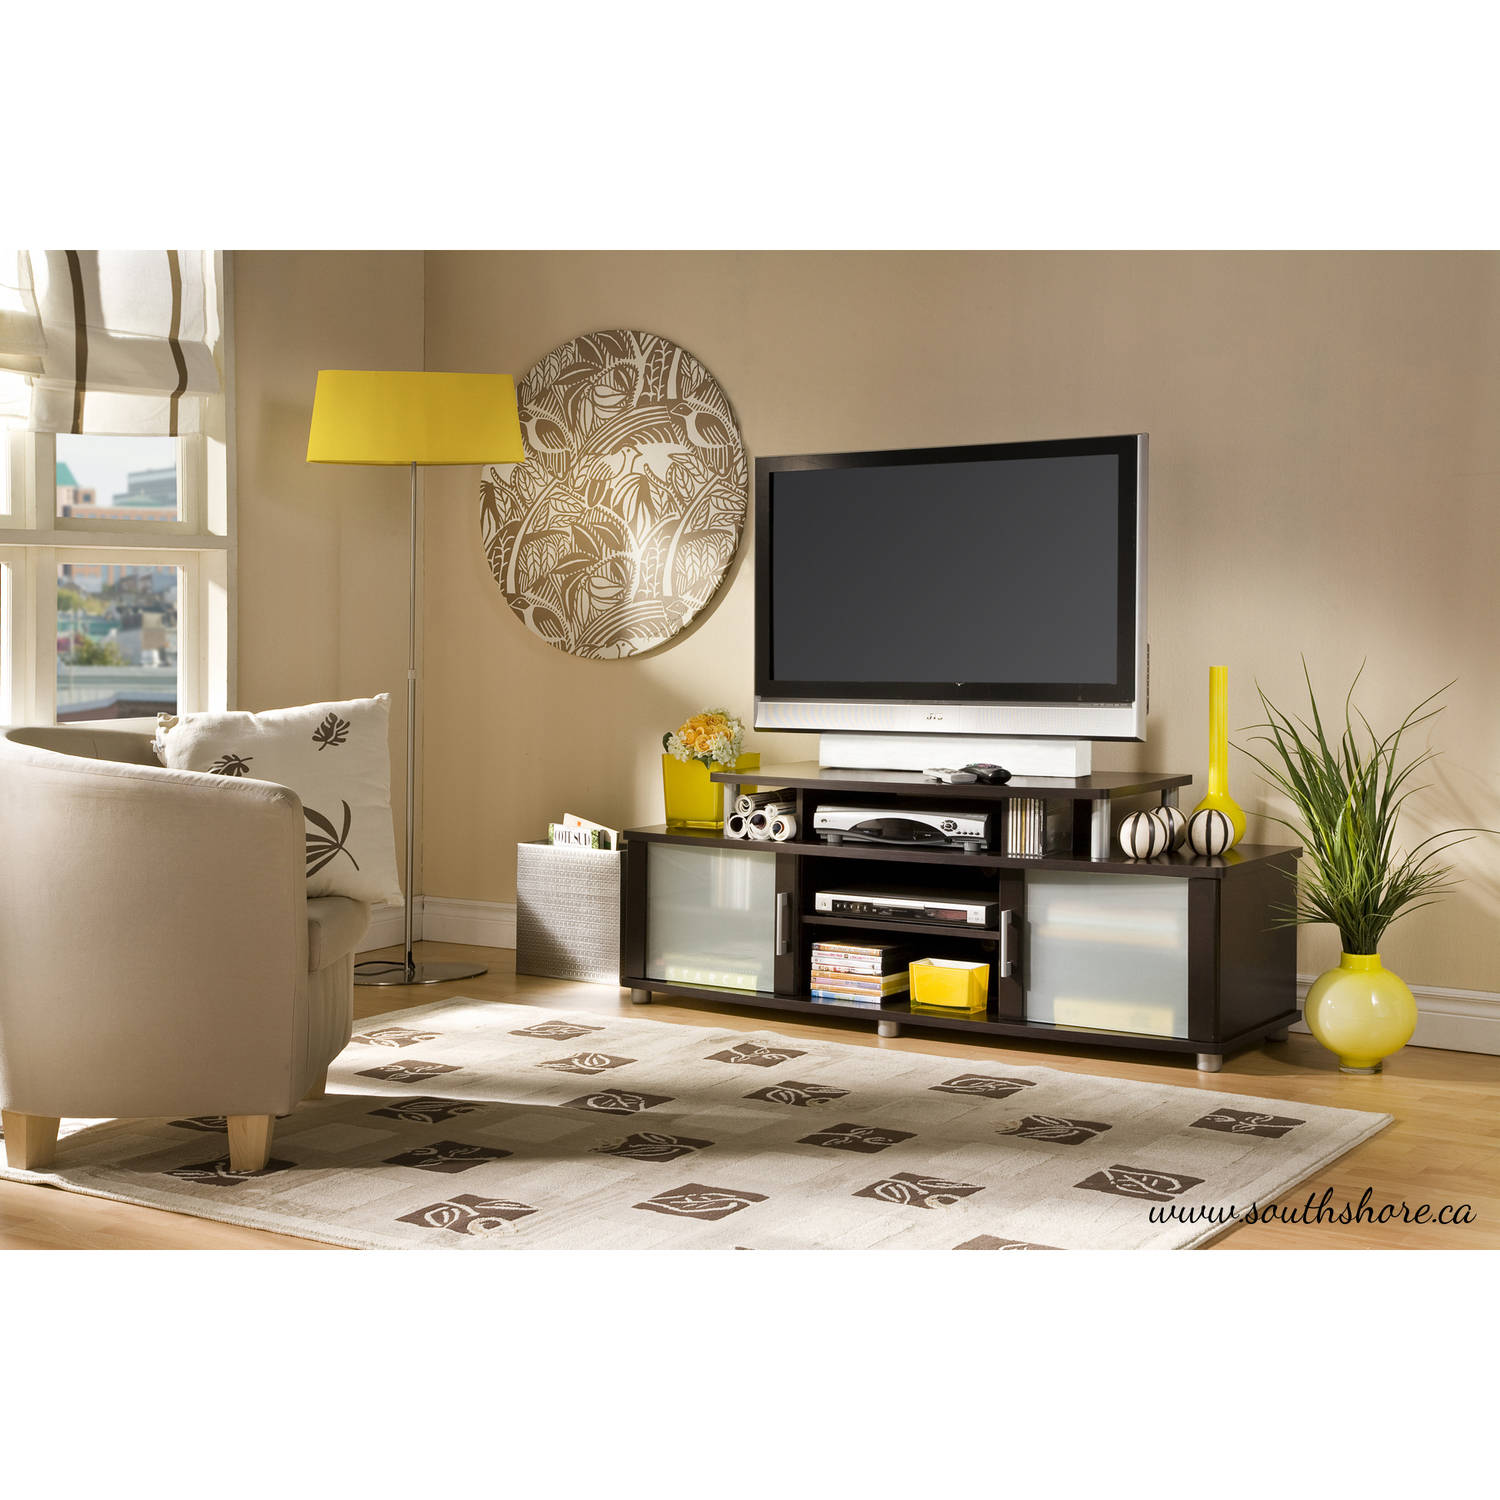 "South Shore City Life TV Stand for TVs up to 50"" Multiple"